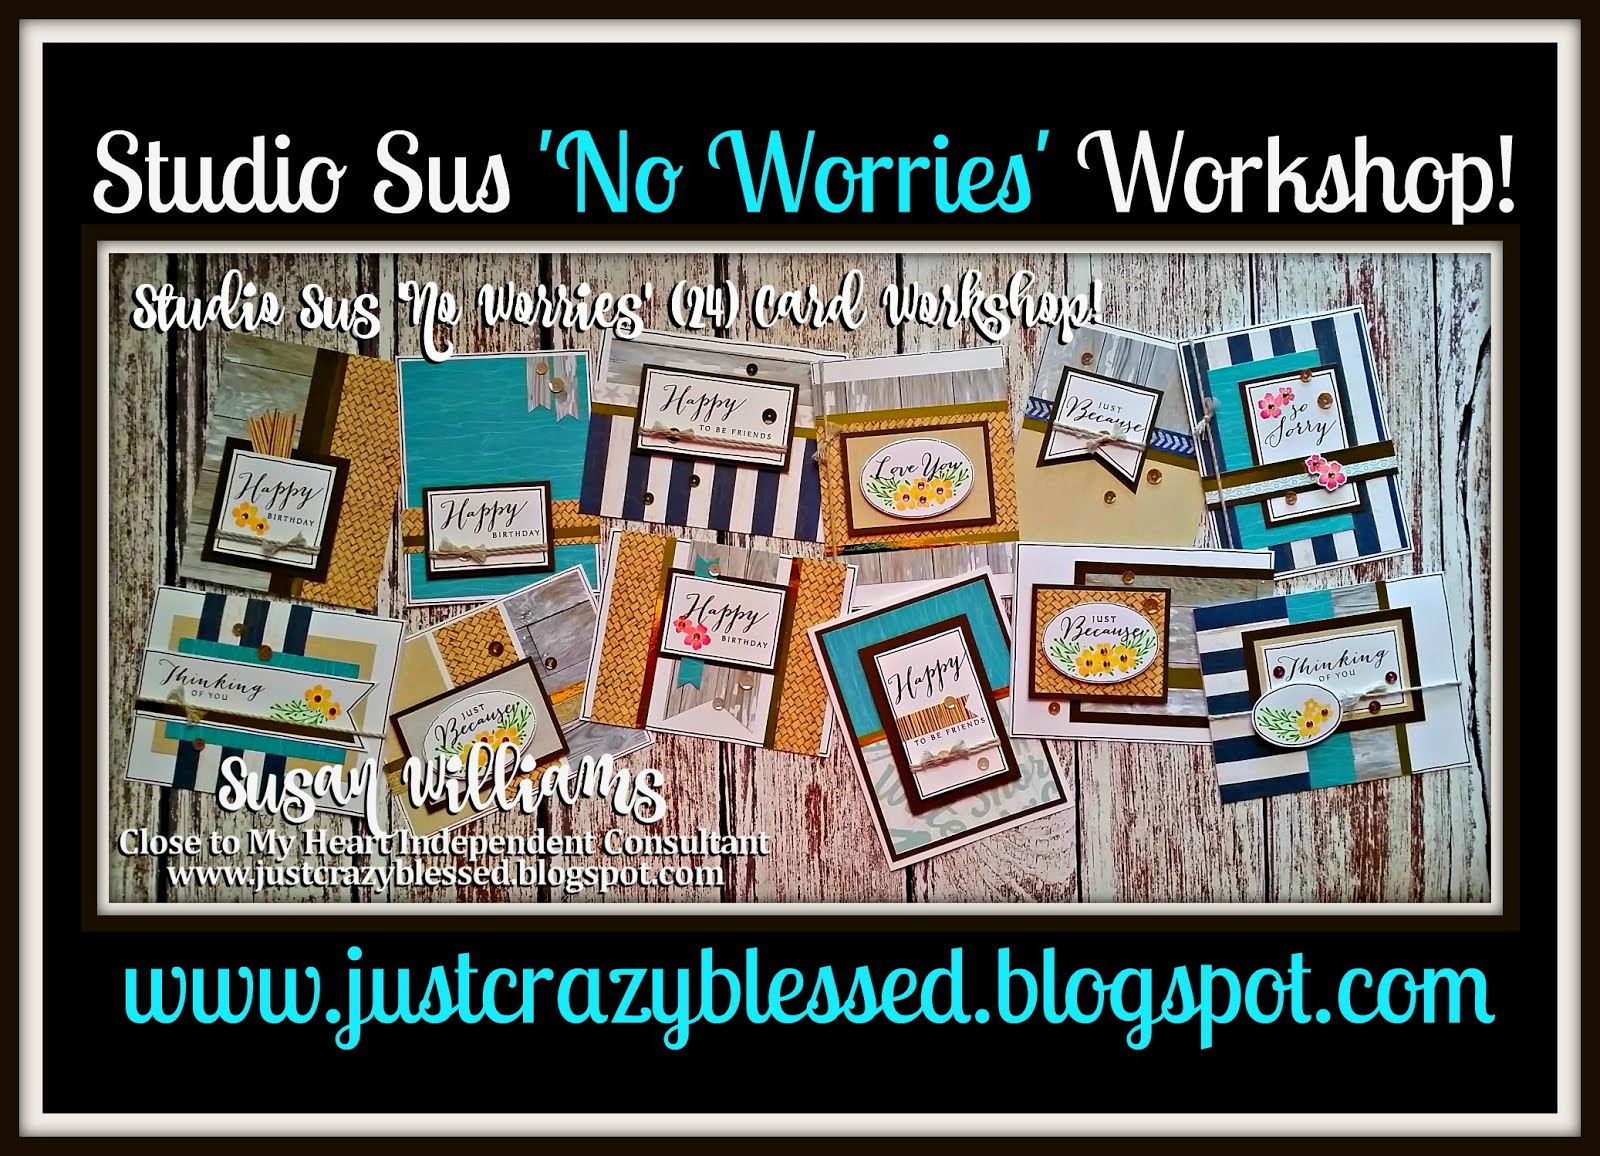 'No Worries' Cardmaking Workshop!